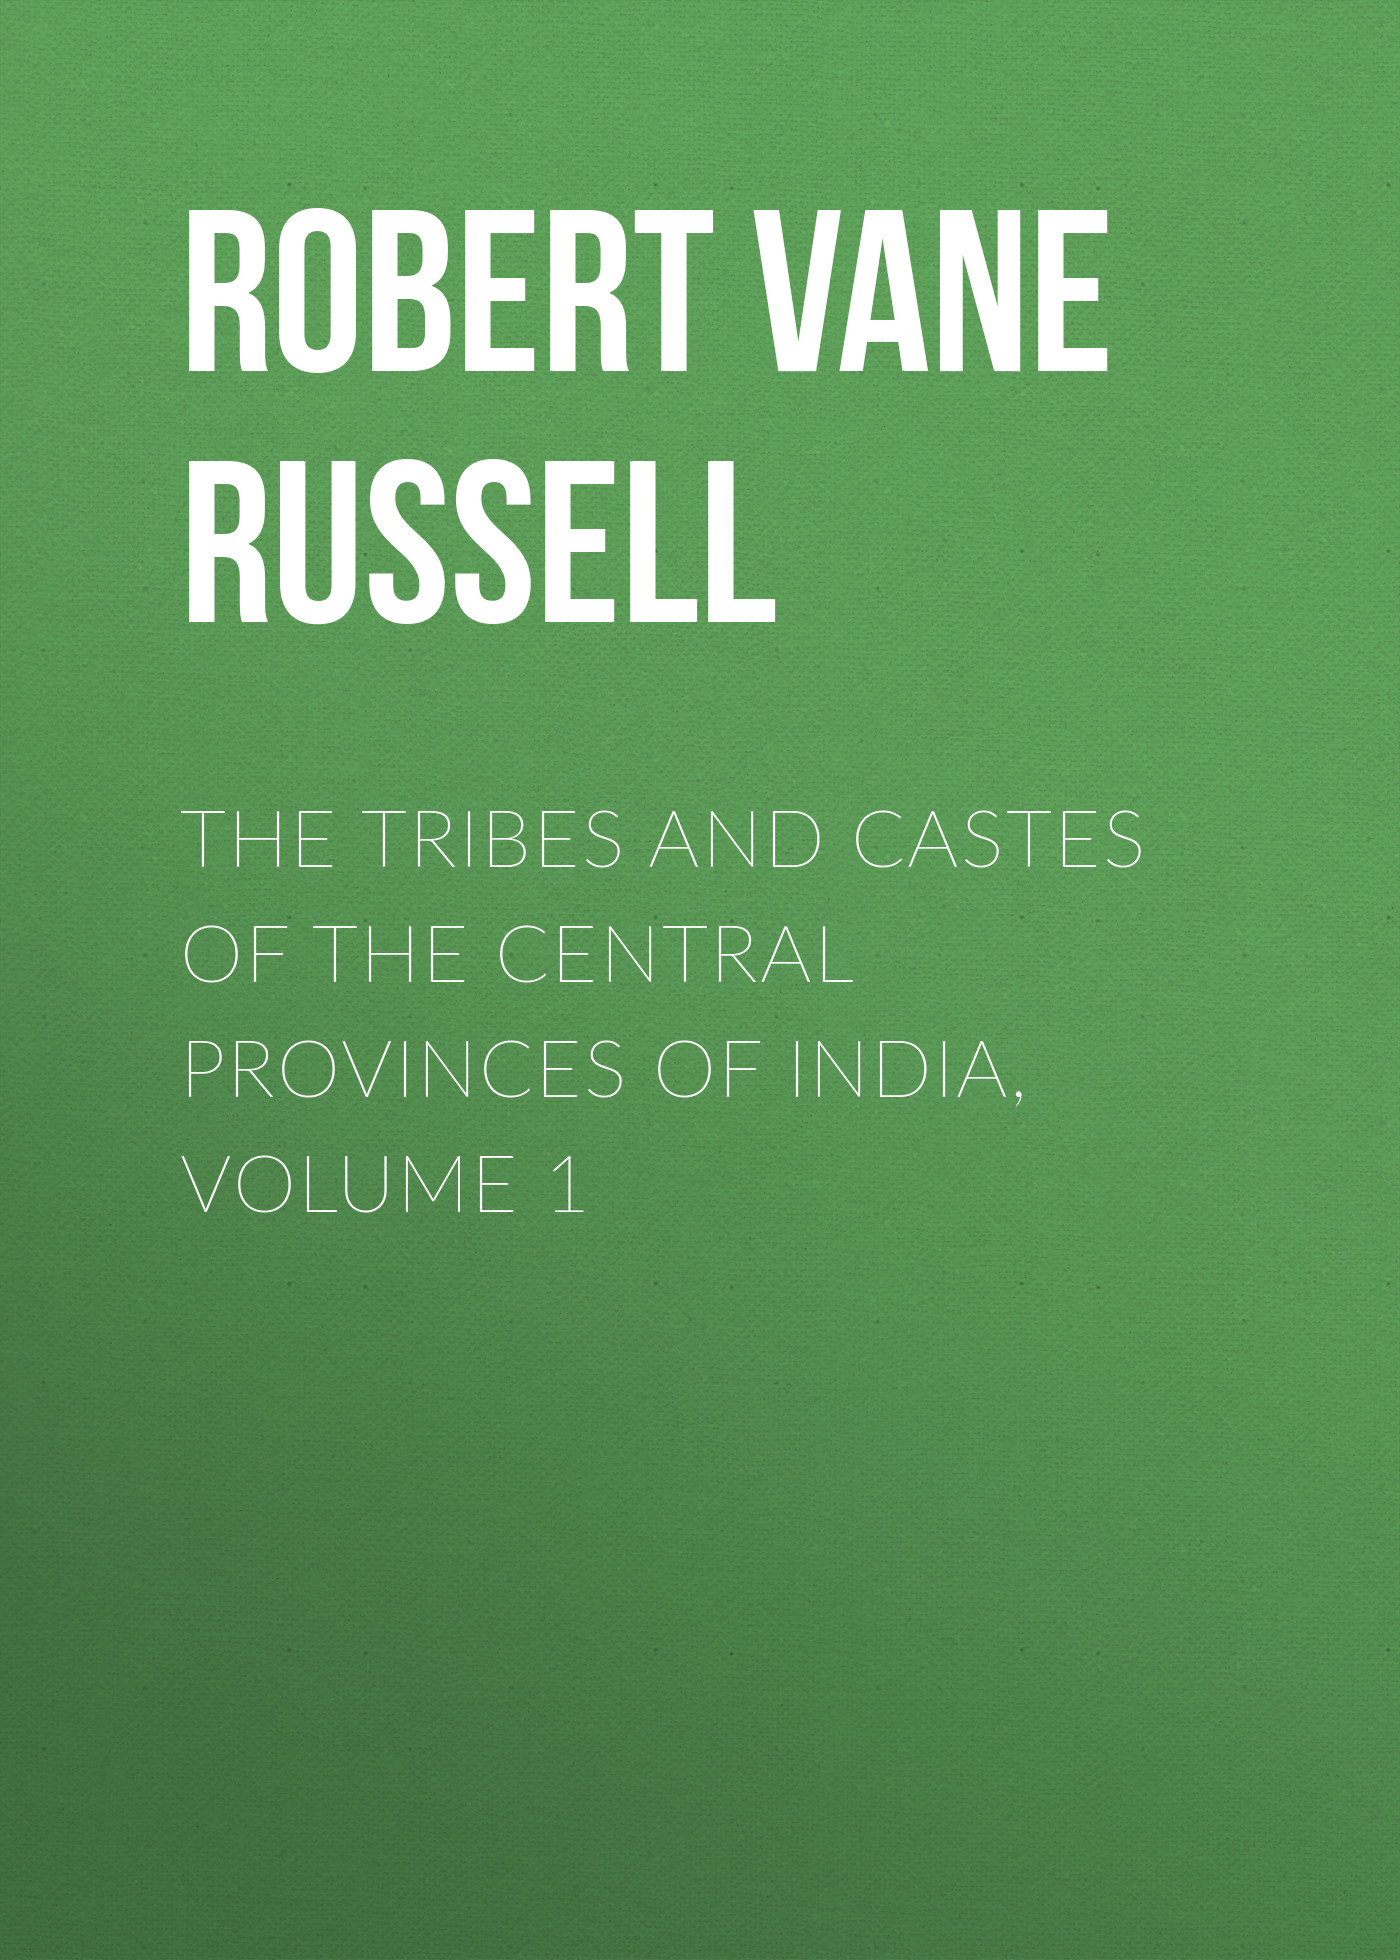 Robert Vane Russell The Tribes and Castes of the Central Provinces of India, Volume 1 ts5823 5 8g 200mw 32ch mini wireless transmitter for fpv black page 9